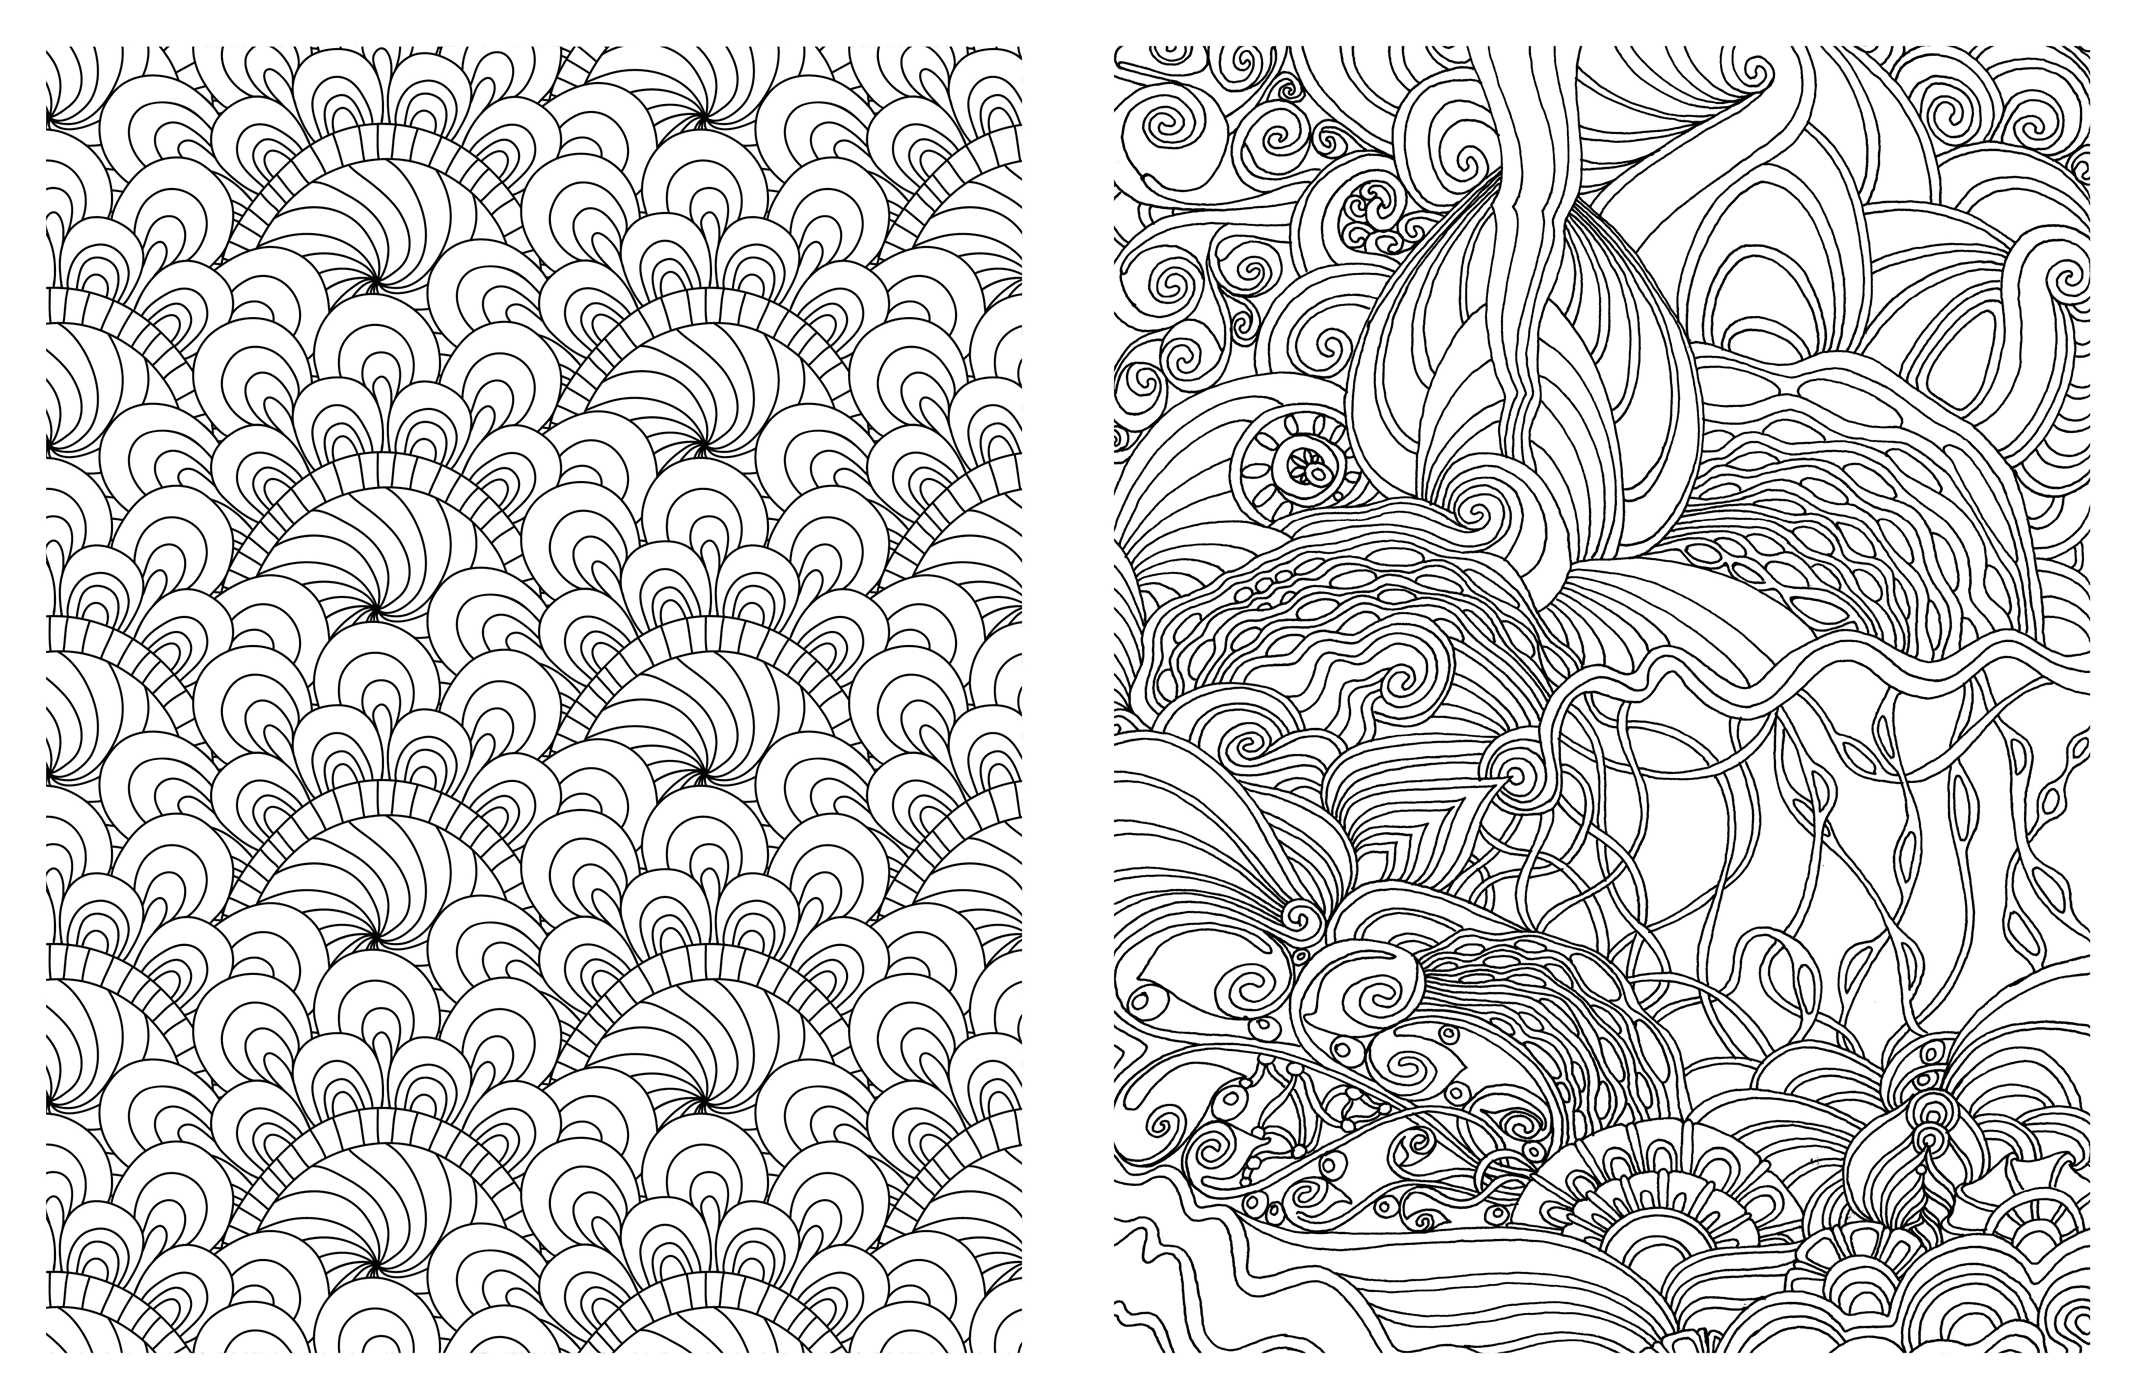 amazoncom posh adult coloring book soothing designs for fun relaxation posh coloring books 0050837348899 andrews mcmeel publishing books